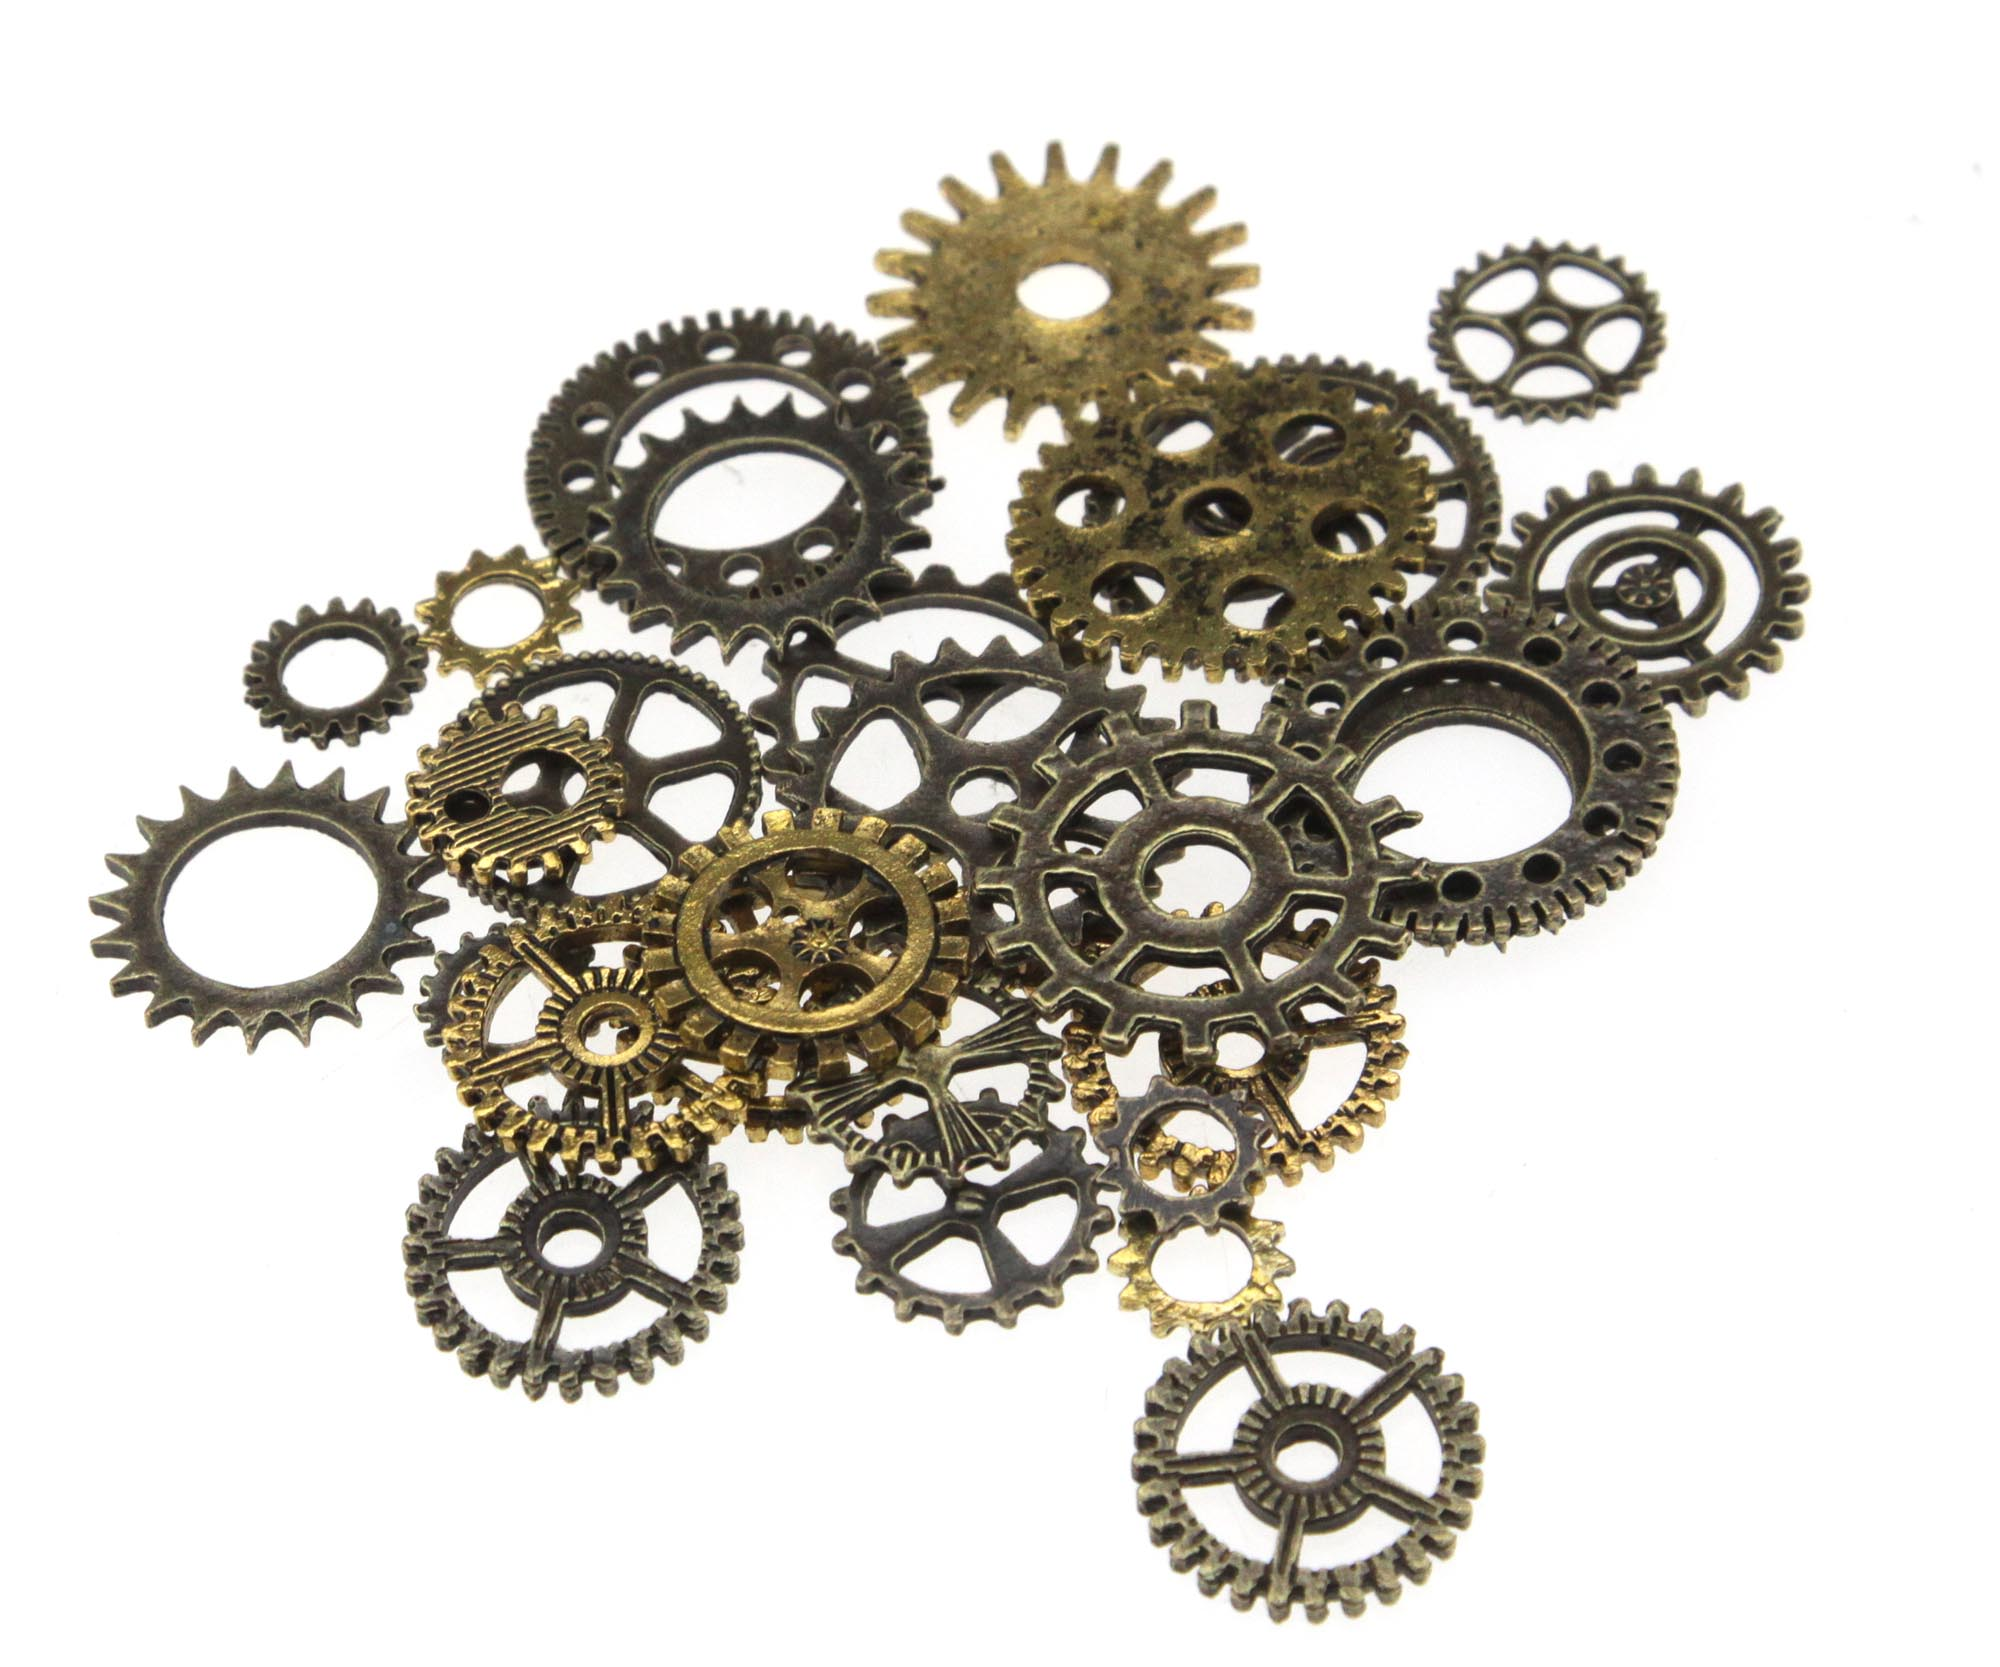 100g altered art crafts watch parts steampunk jewellery for Steampunk arts and crafts